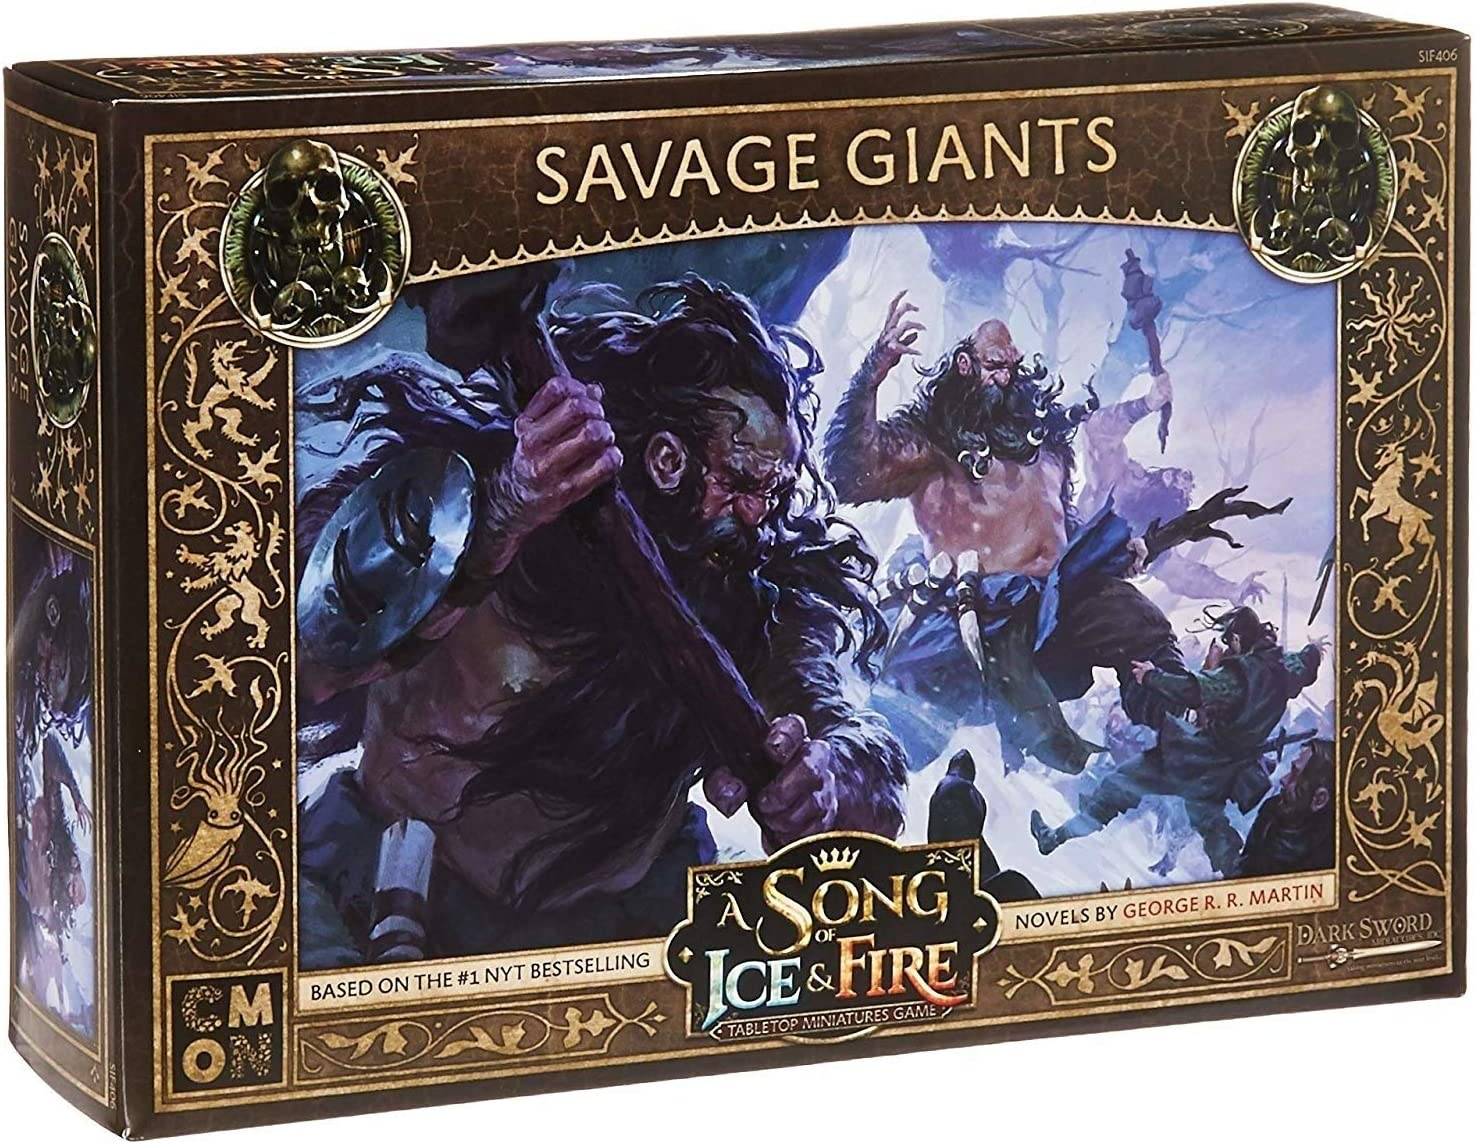 New color MISC Cmon A Song of Ice Fire: Tabletop - Fo gift Game Miniatures Free